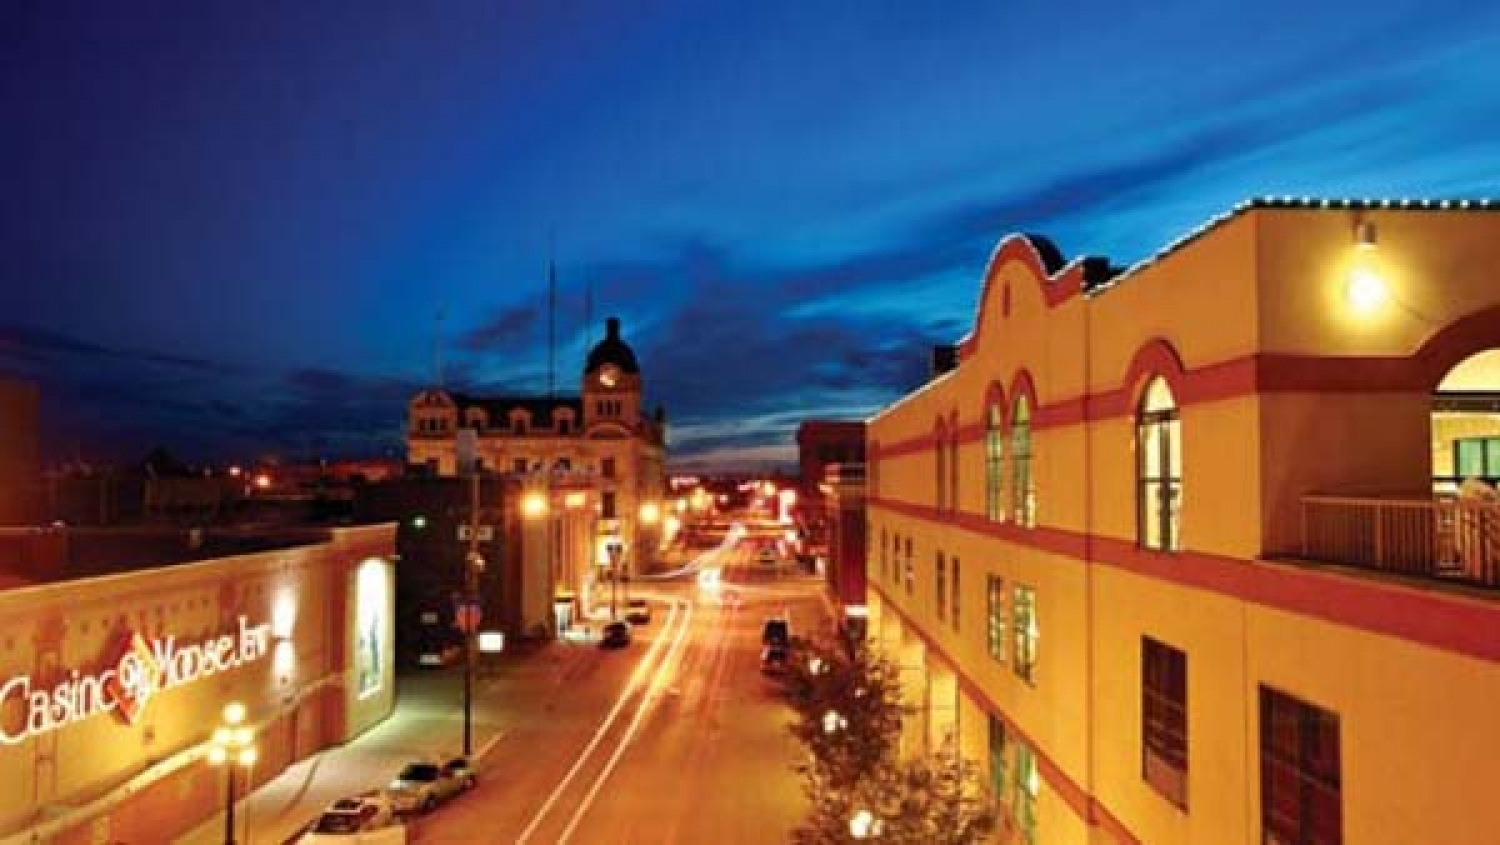 75 More Things We Love About Moose Jaw!